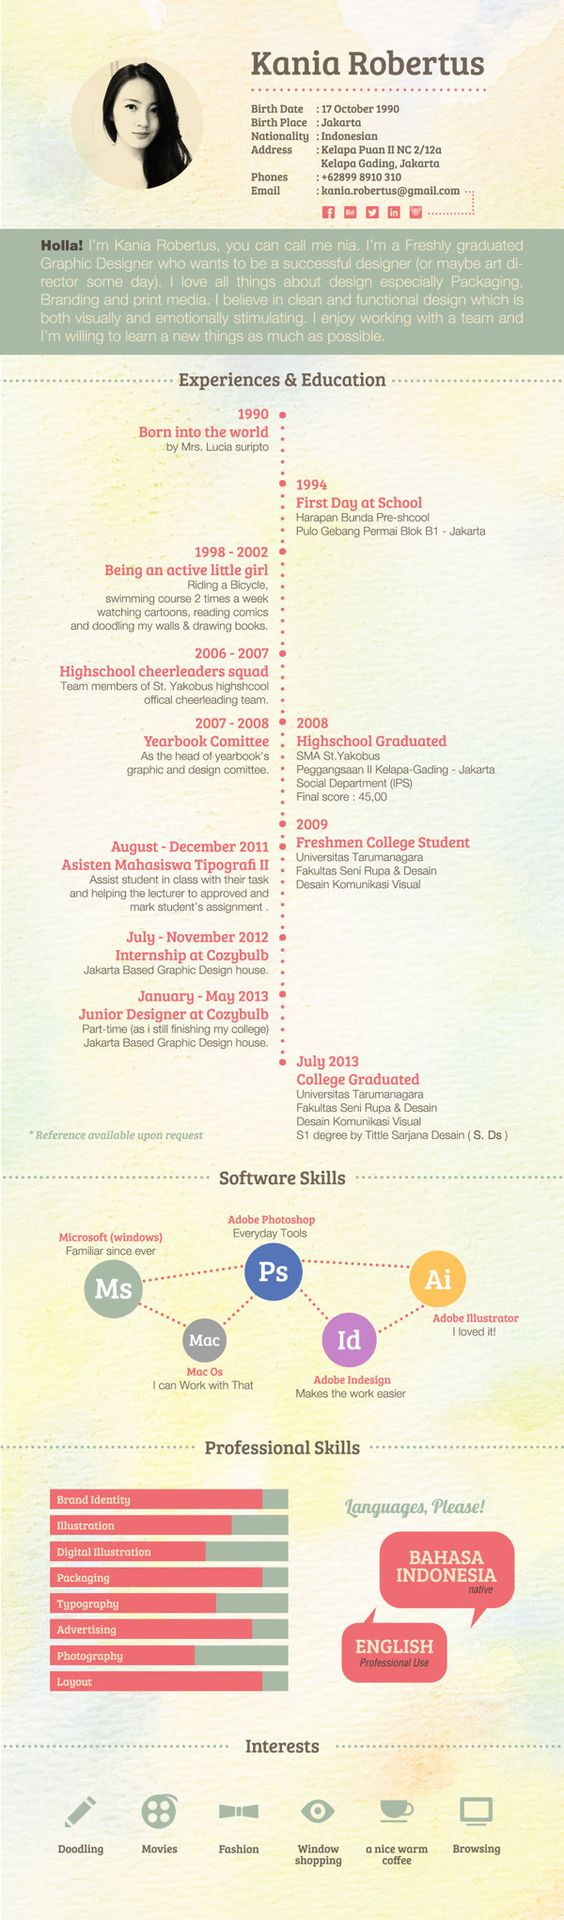 examples of creative graphic design resumes infographics 30 examples of creative graphic design resumes infographics